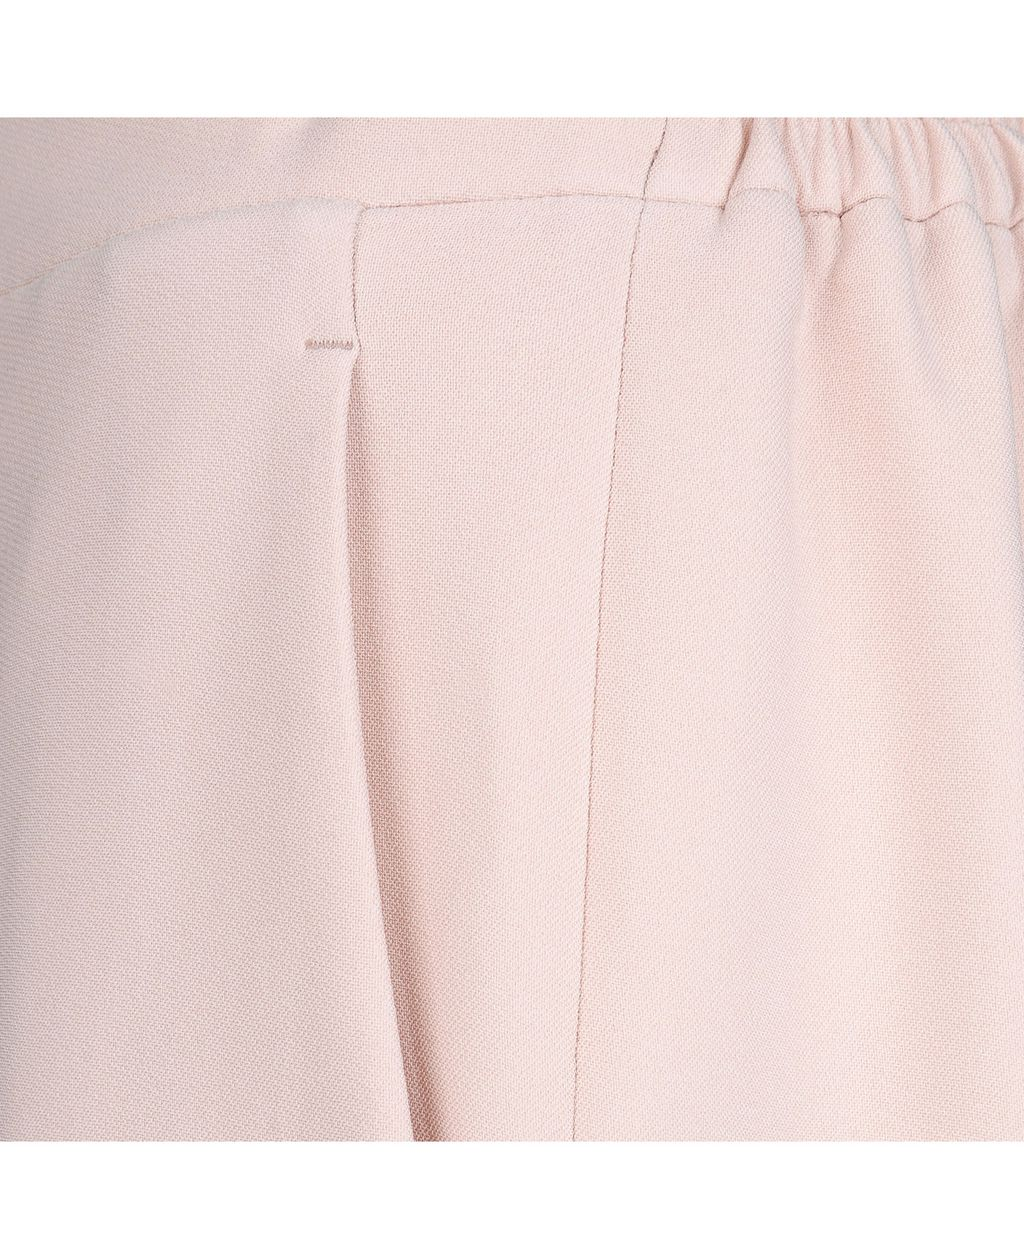 Rose Julia Trousers - STELLA MCCARTNEY